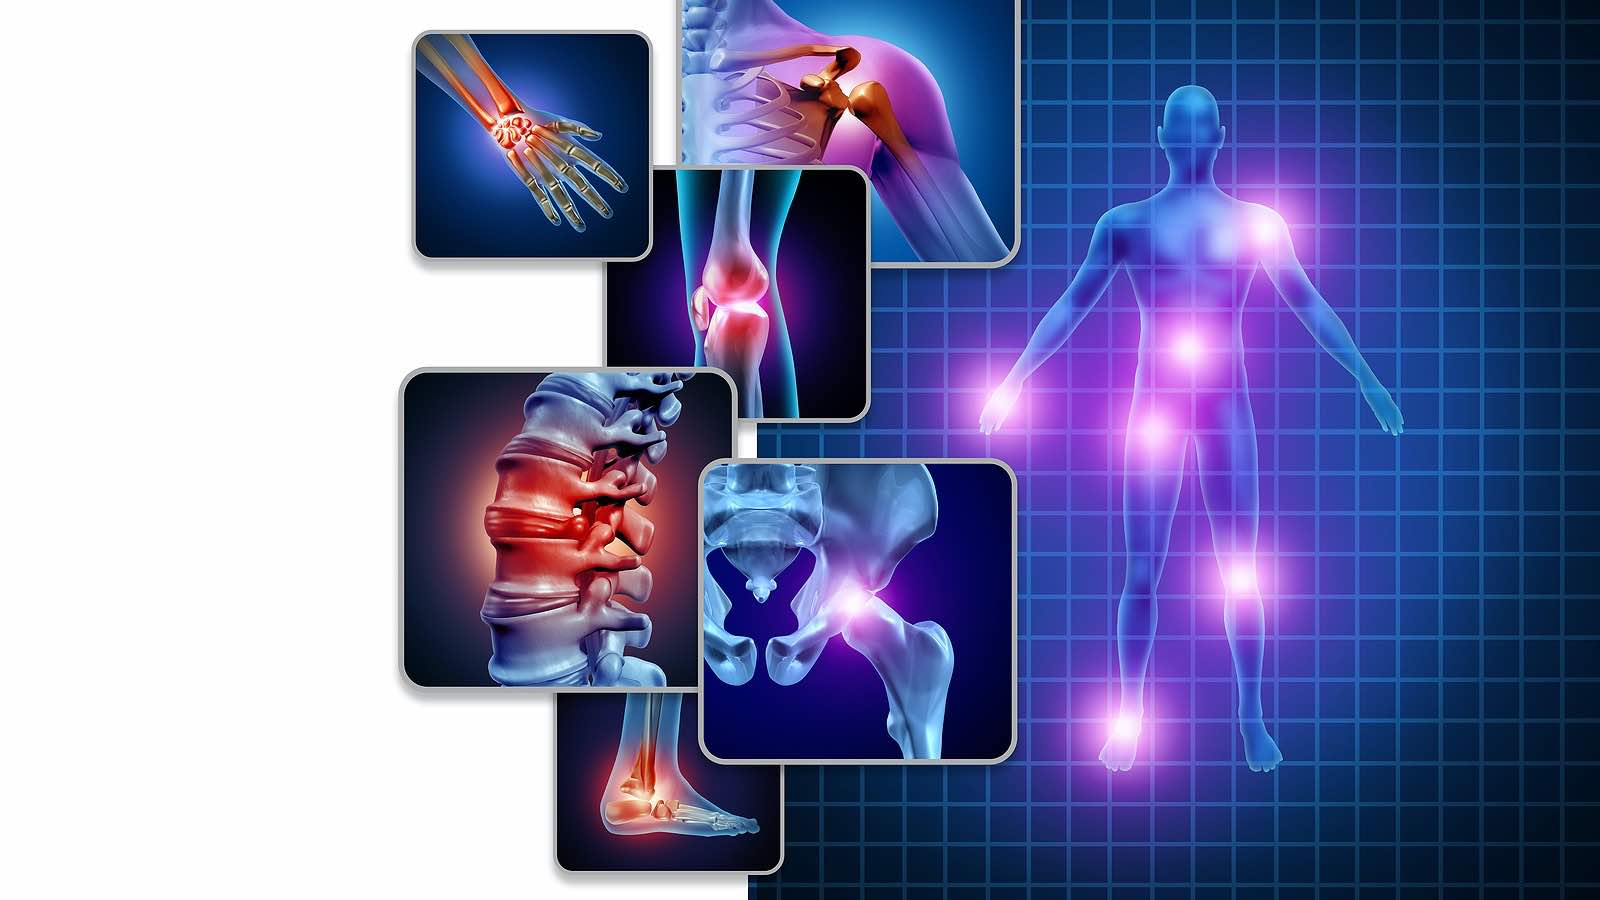 Co-morbidities and Extra-Articular Manifestations of Spondyloarthropathy : Accurately identify the wide-ranging, systemic effects of spondyloarthropathy and know when to refer to a specialist